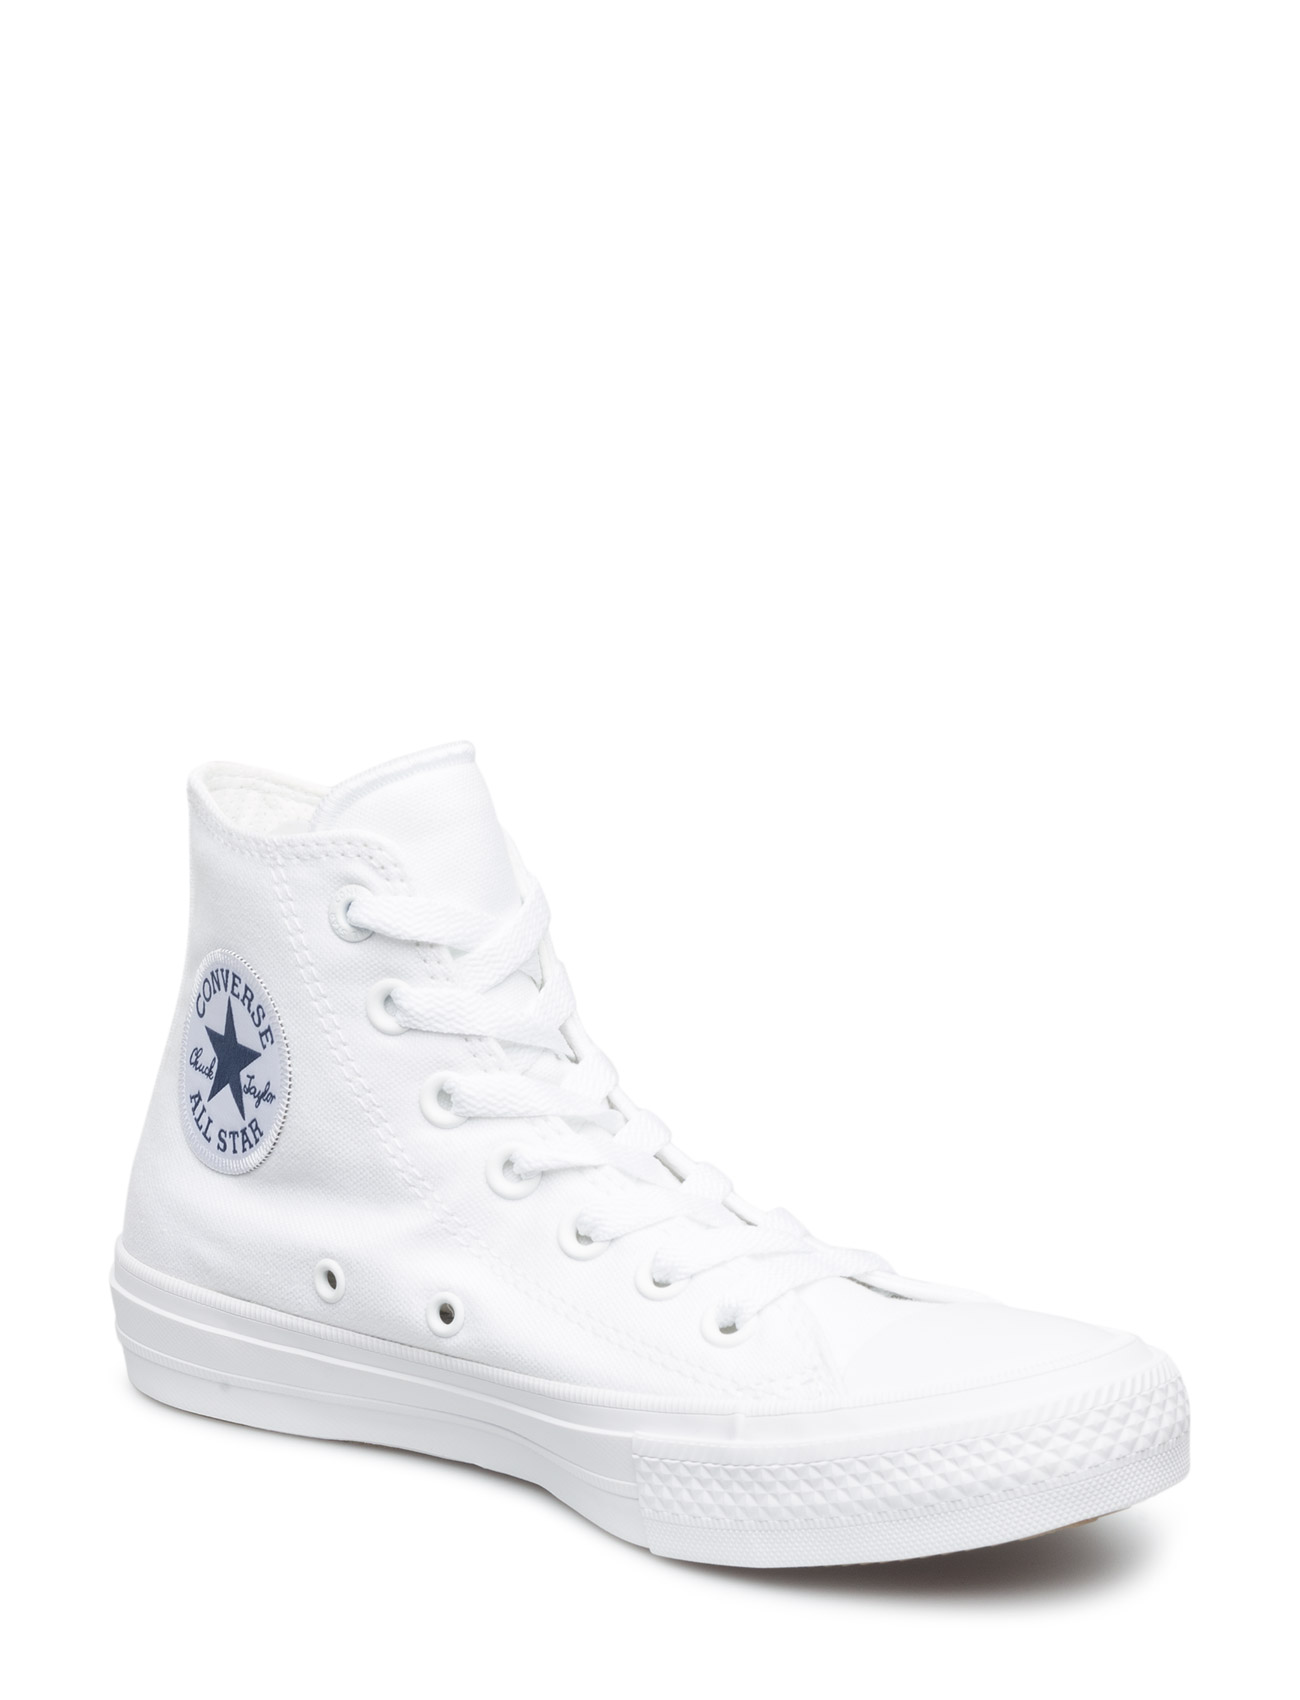 Ct Ii Hi White/White/Navy